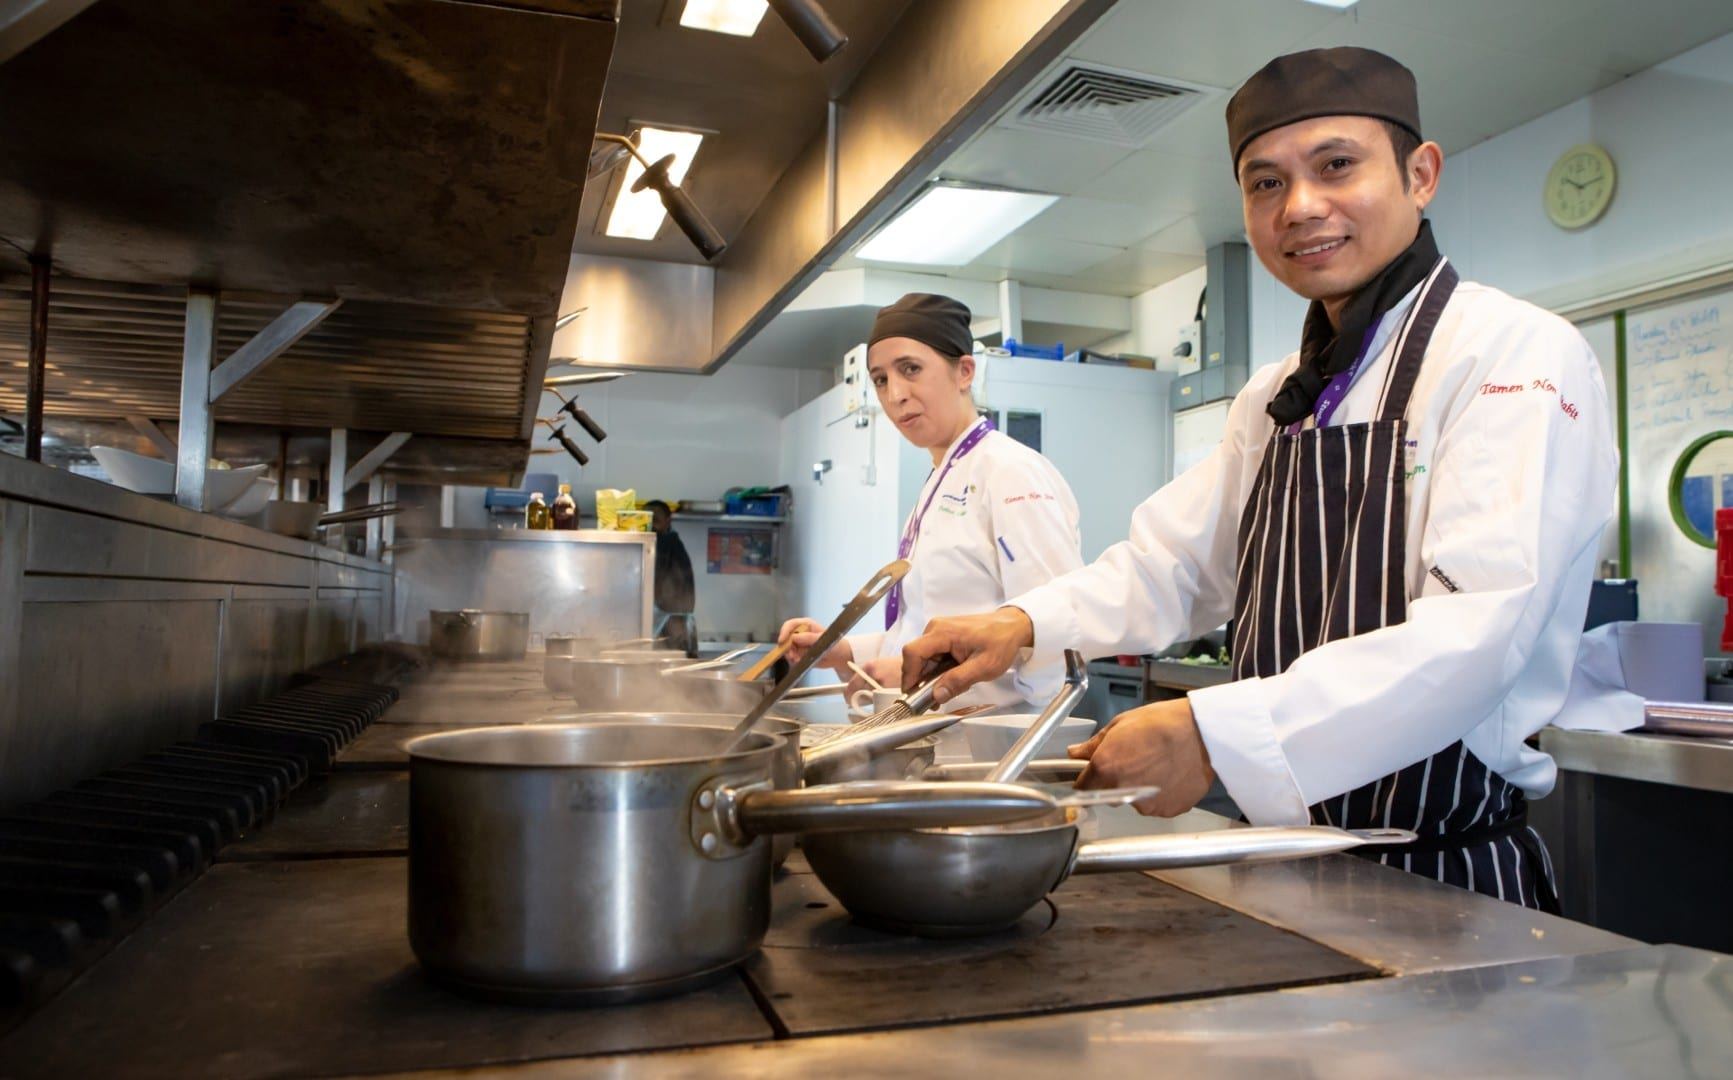 Culinary Apprentices